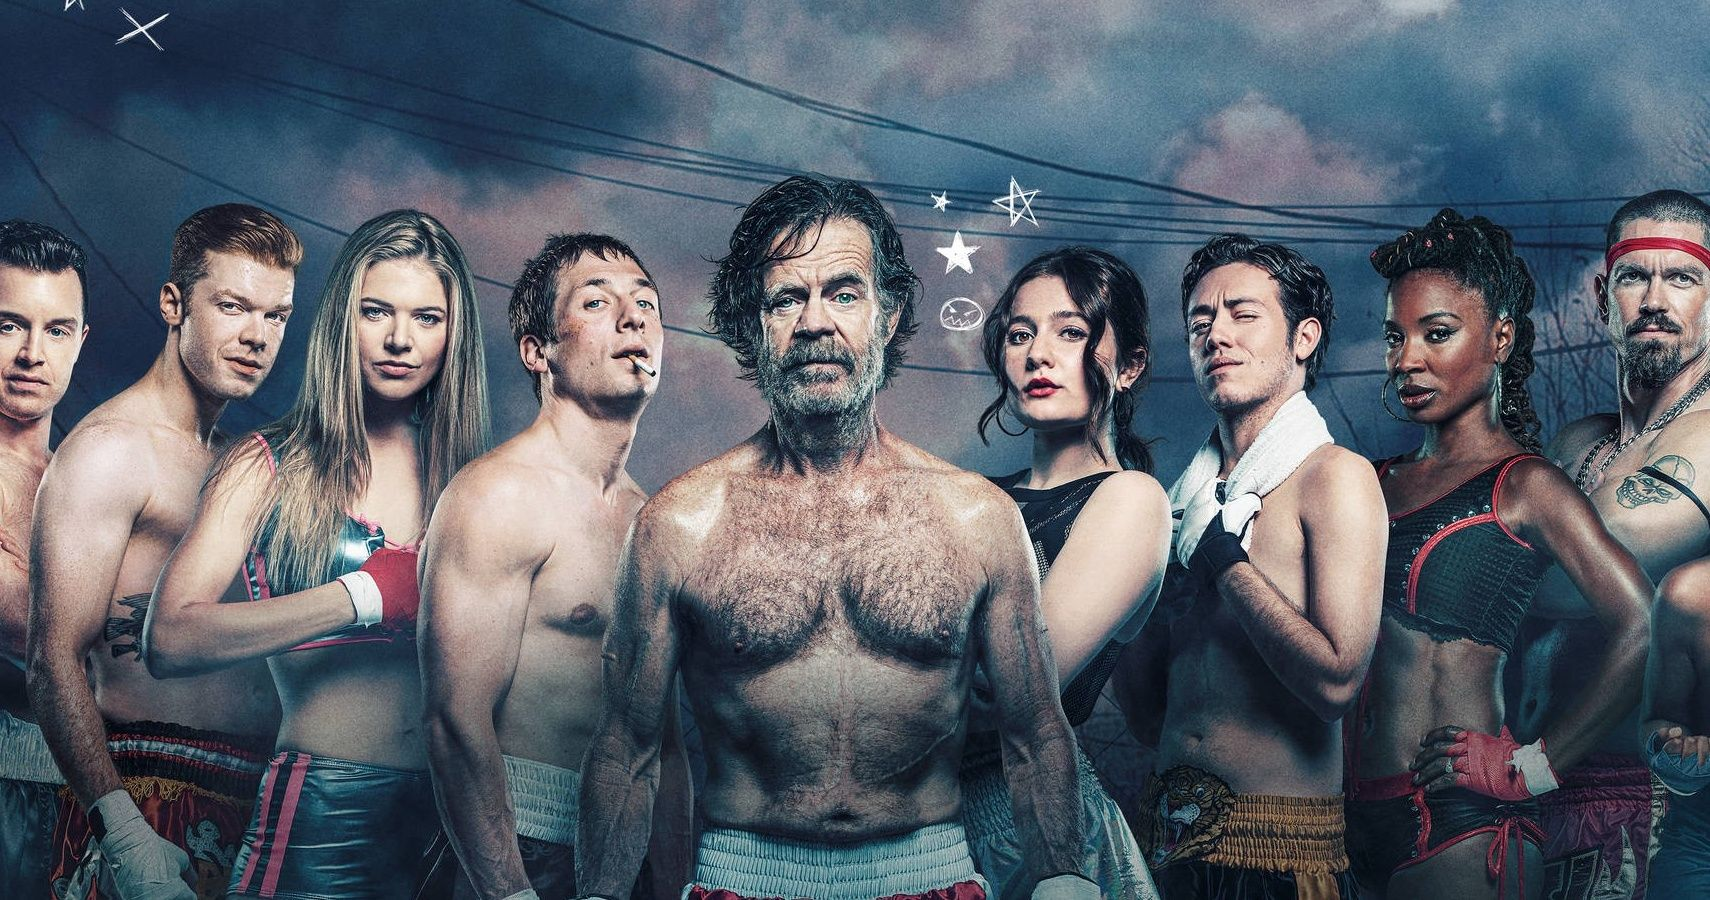 Shameless: The Worst Thing Each Main Character Has Done